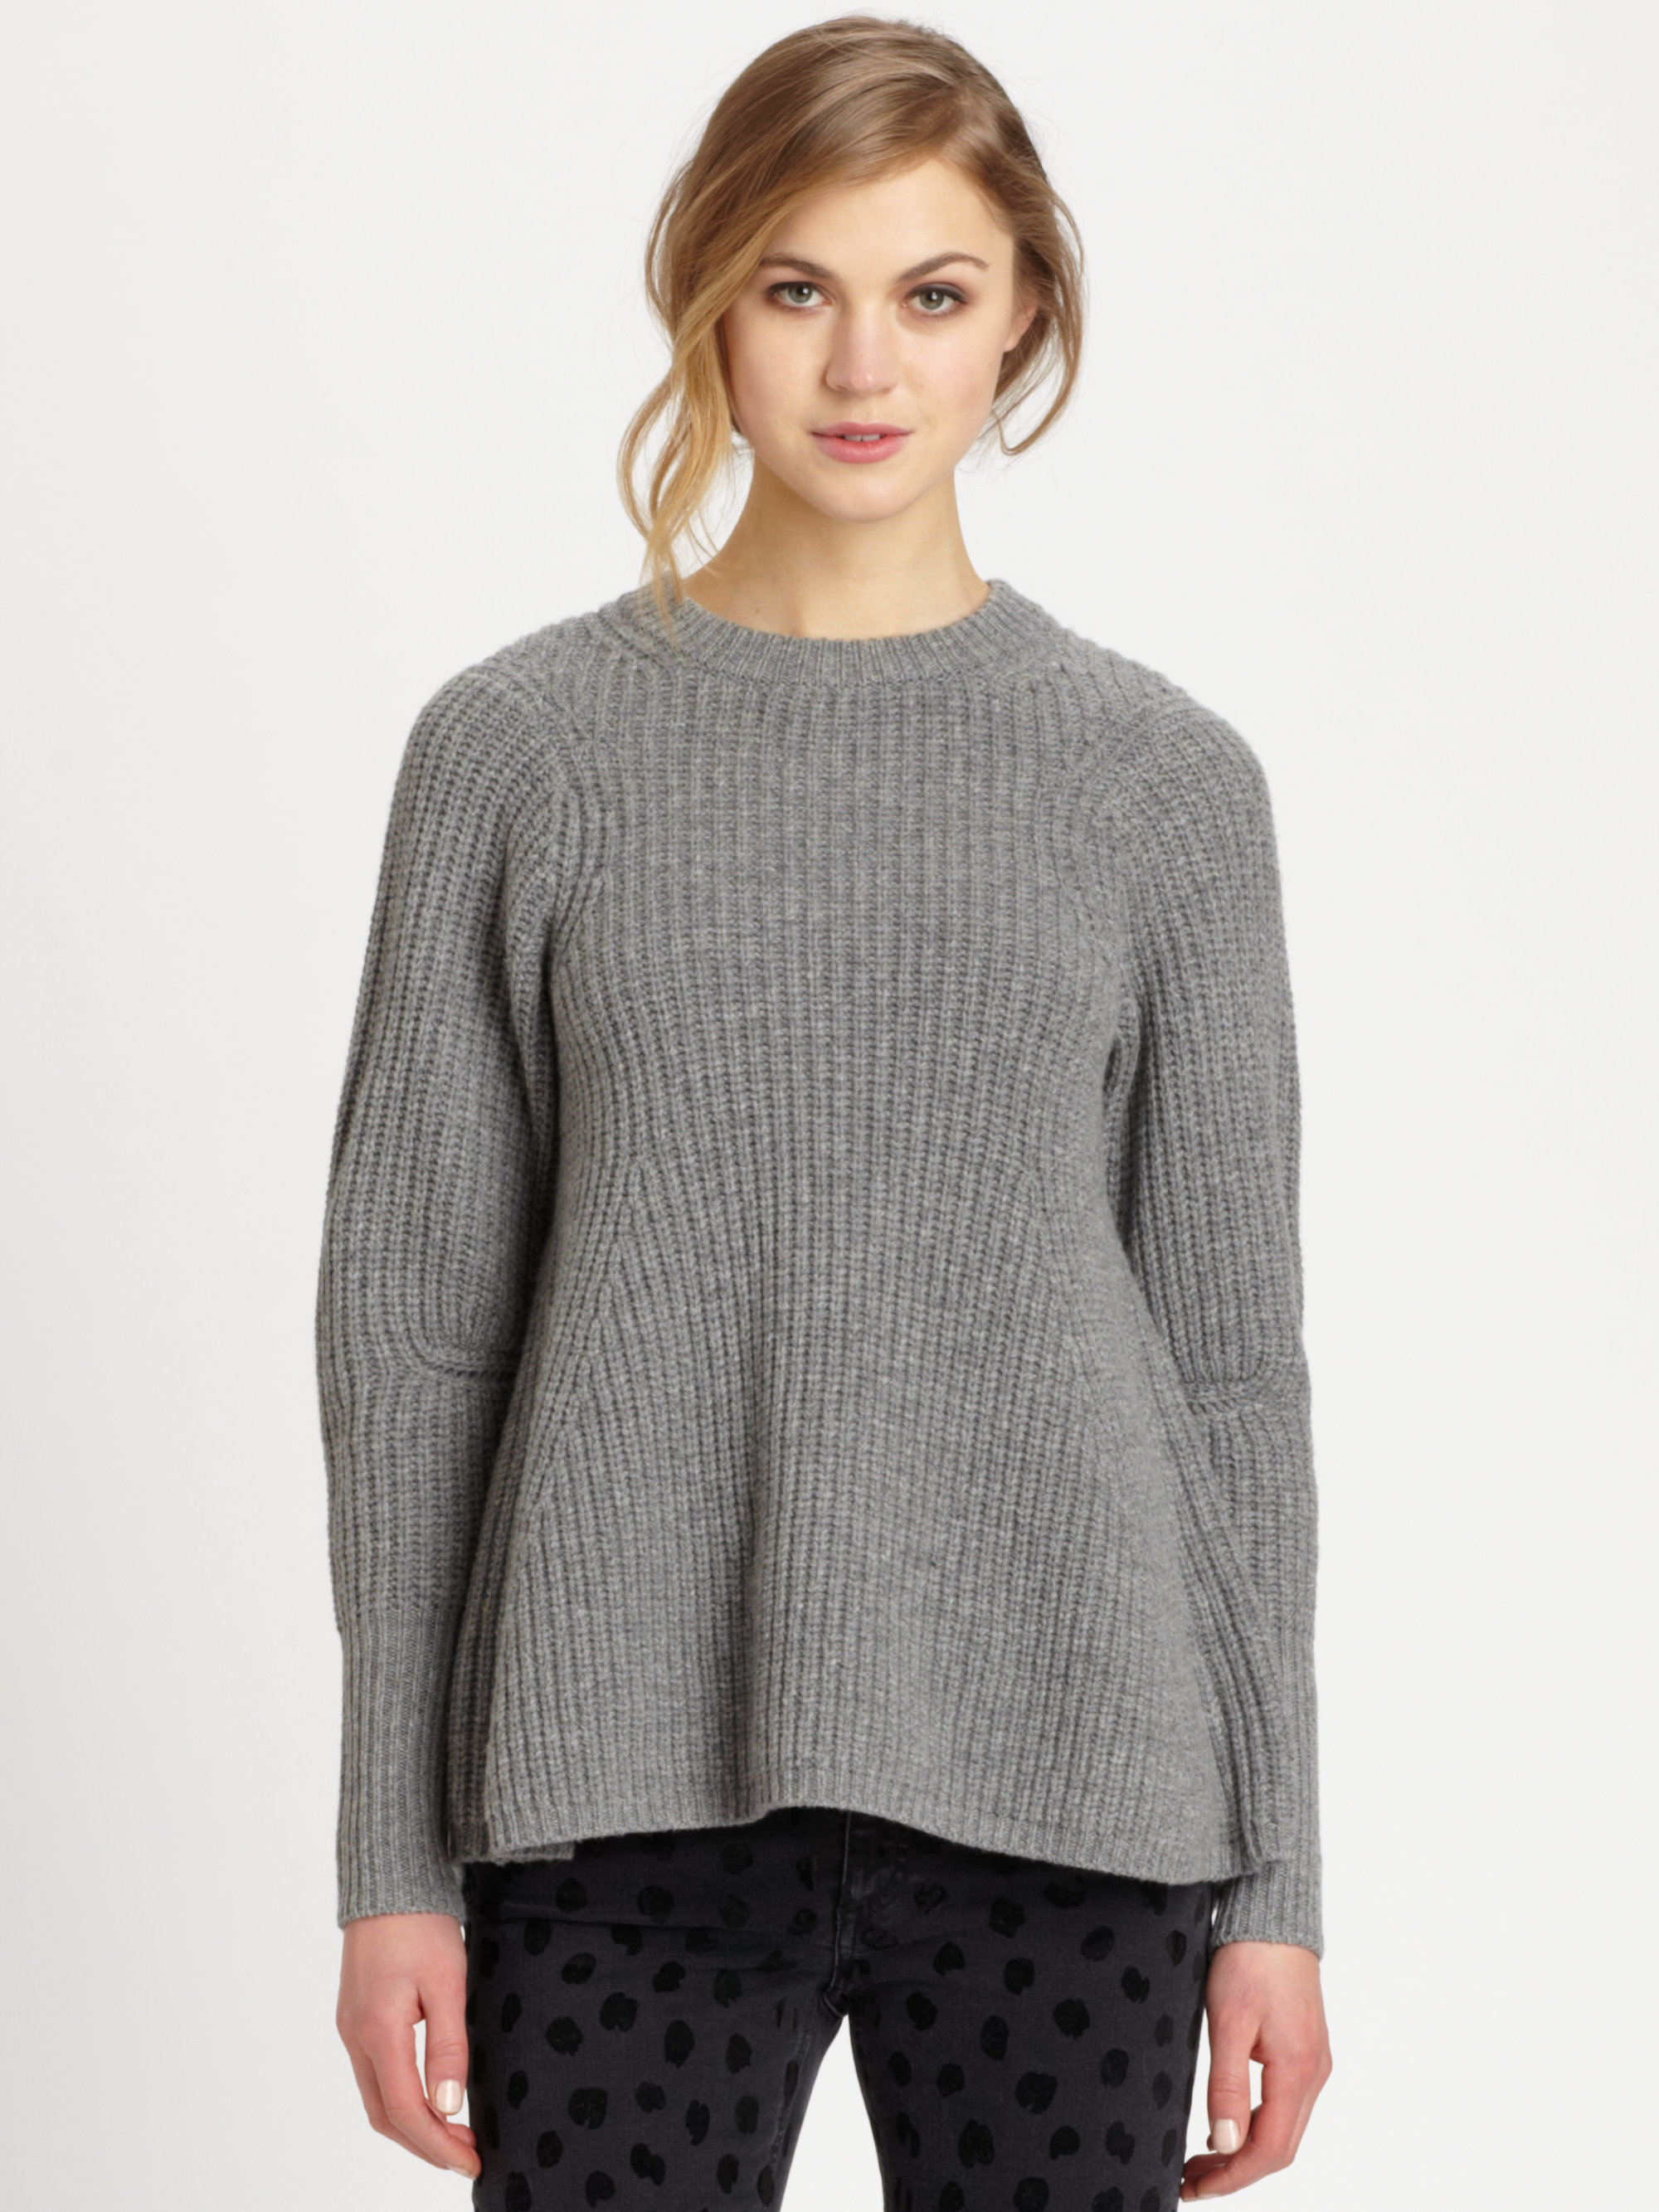 acne studios dixie wool sweater in gray grey melange lyst. Black Bedroom Furniture Sets. Home Design Ideas